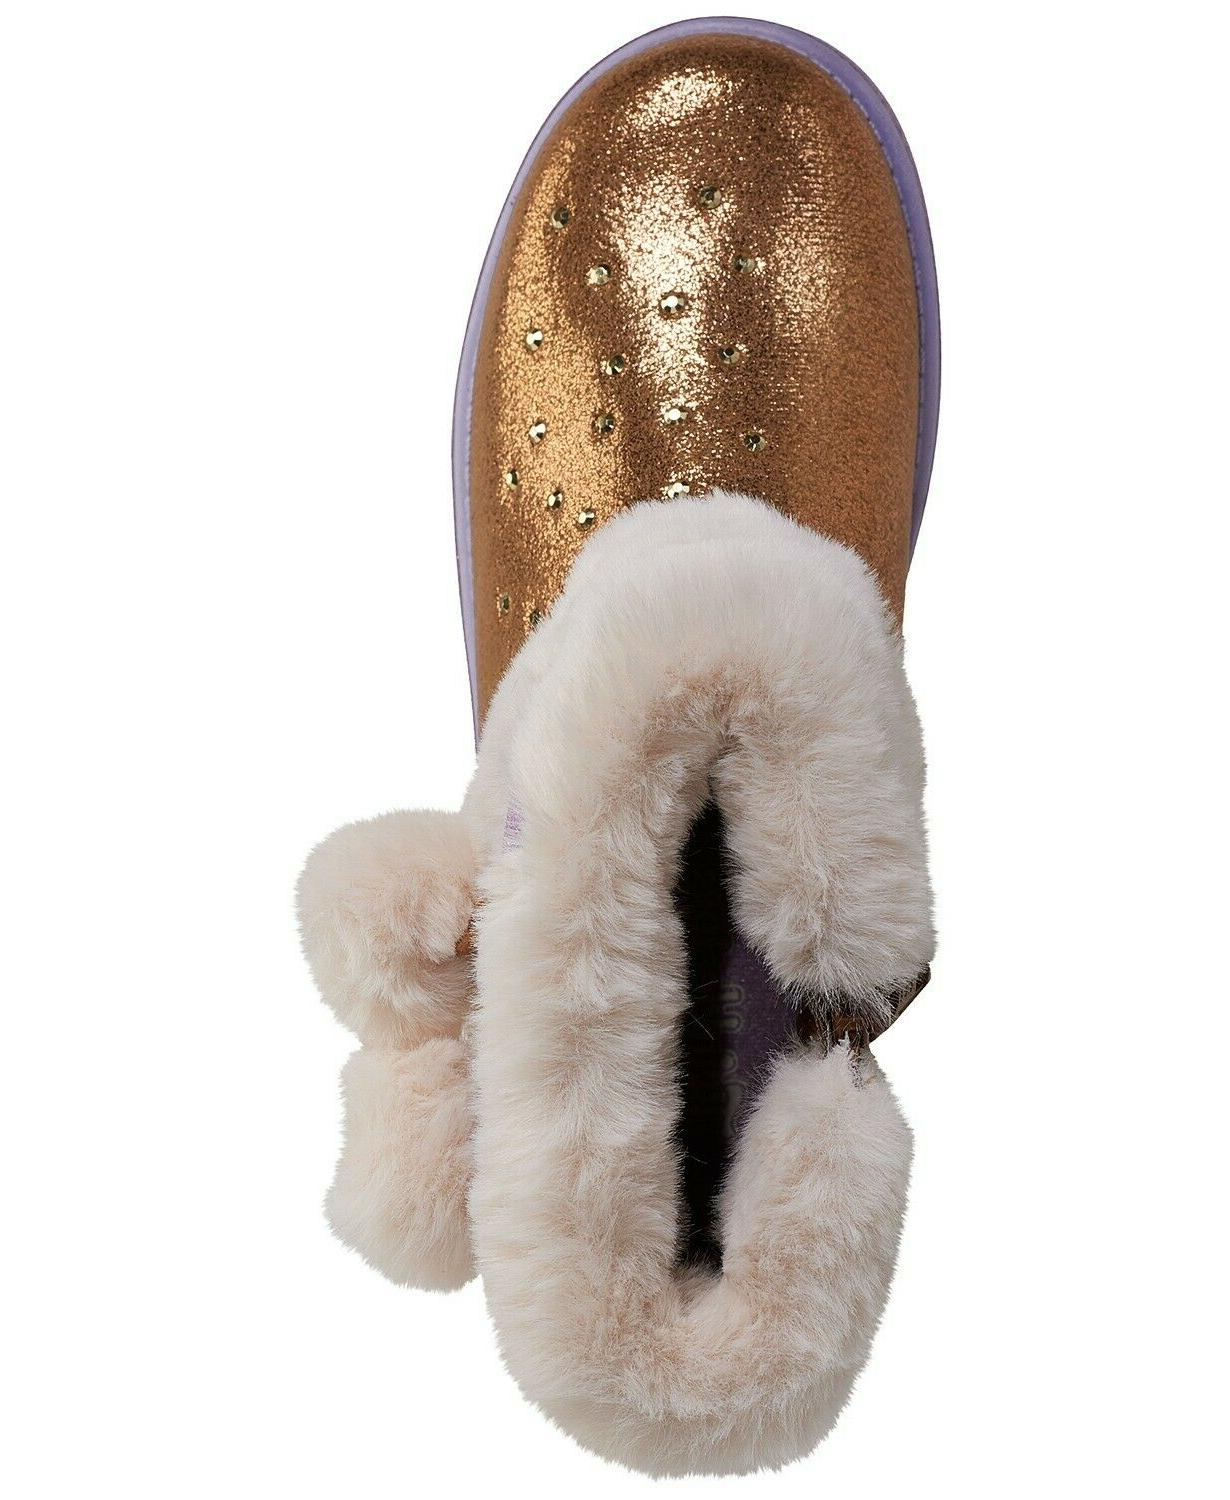 Skechers Little Toes Glitzy Sparkle Sweet Boots